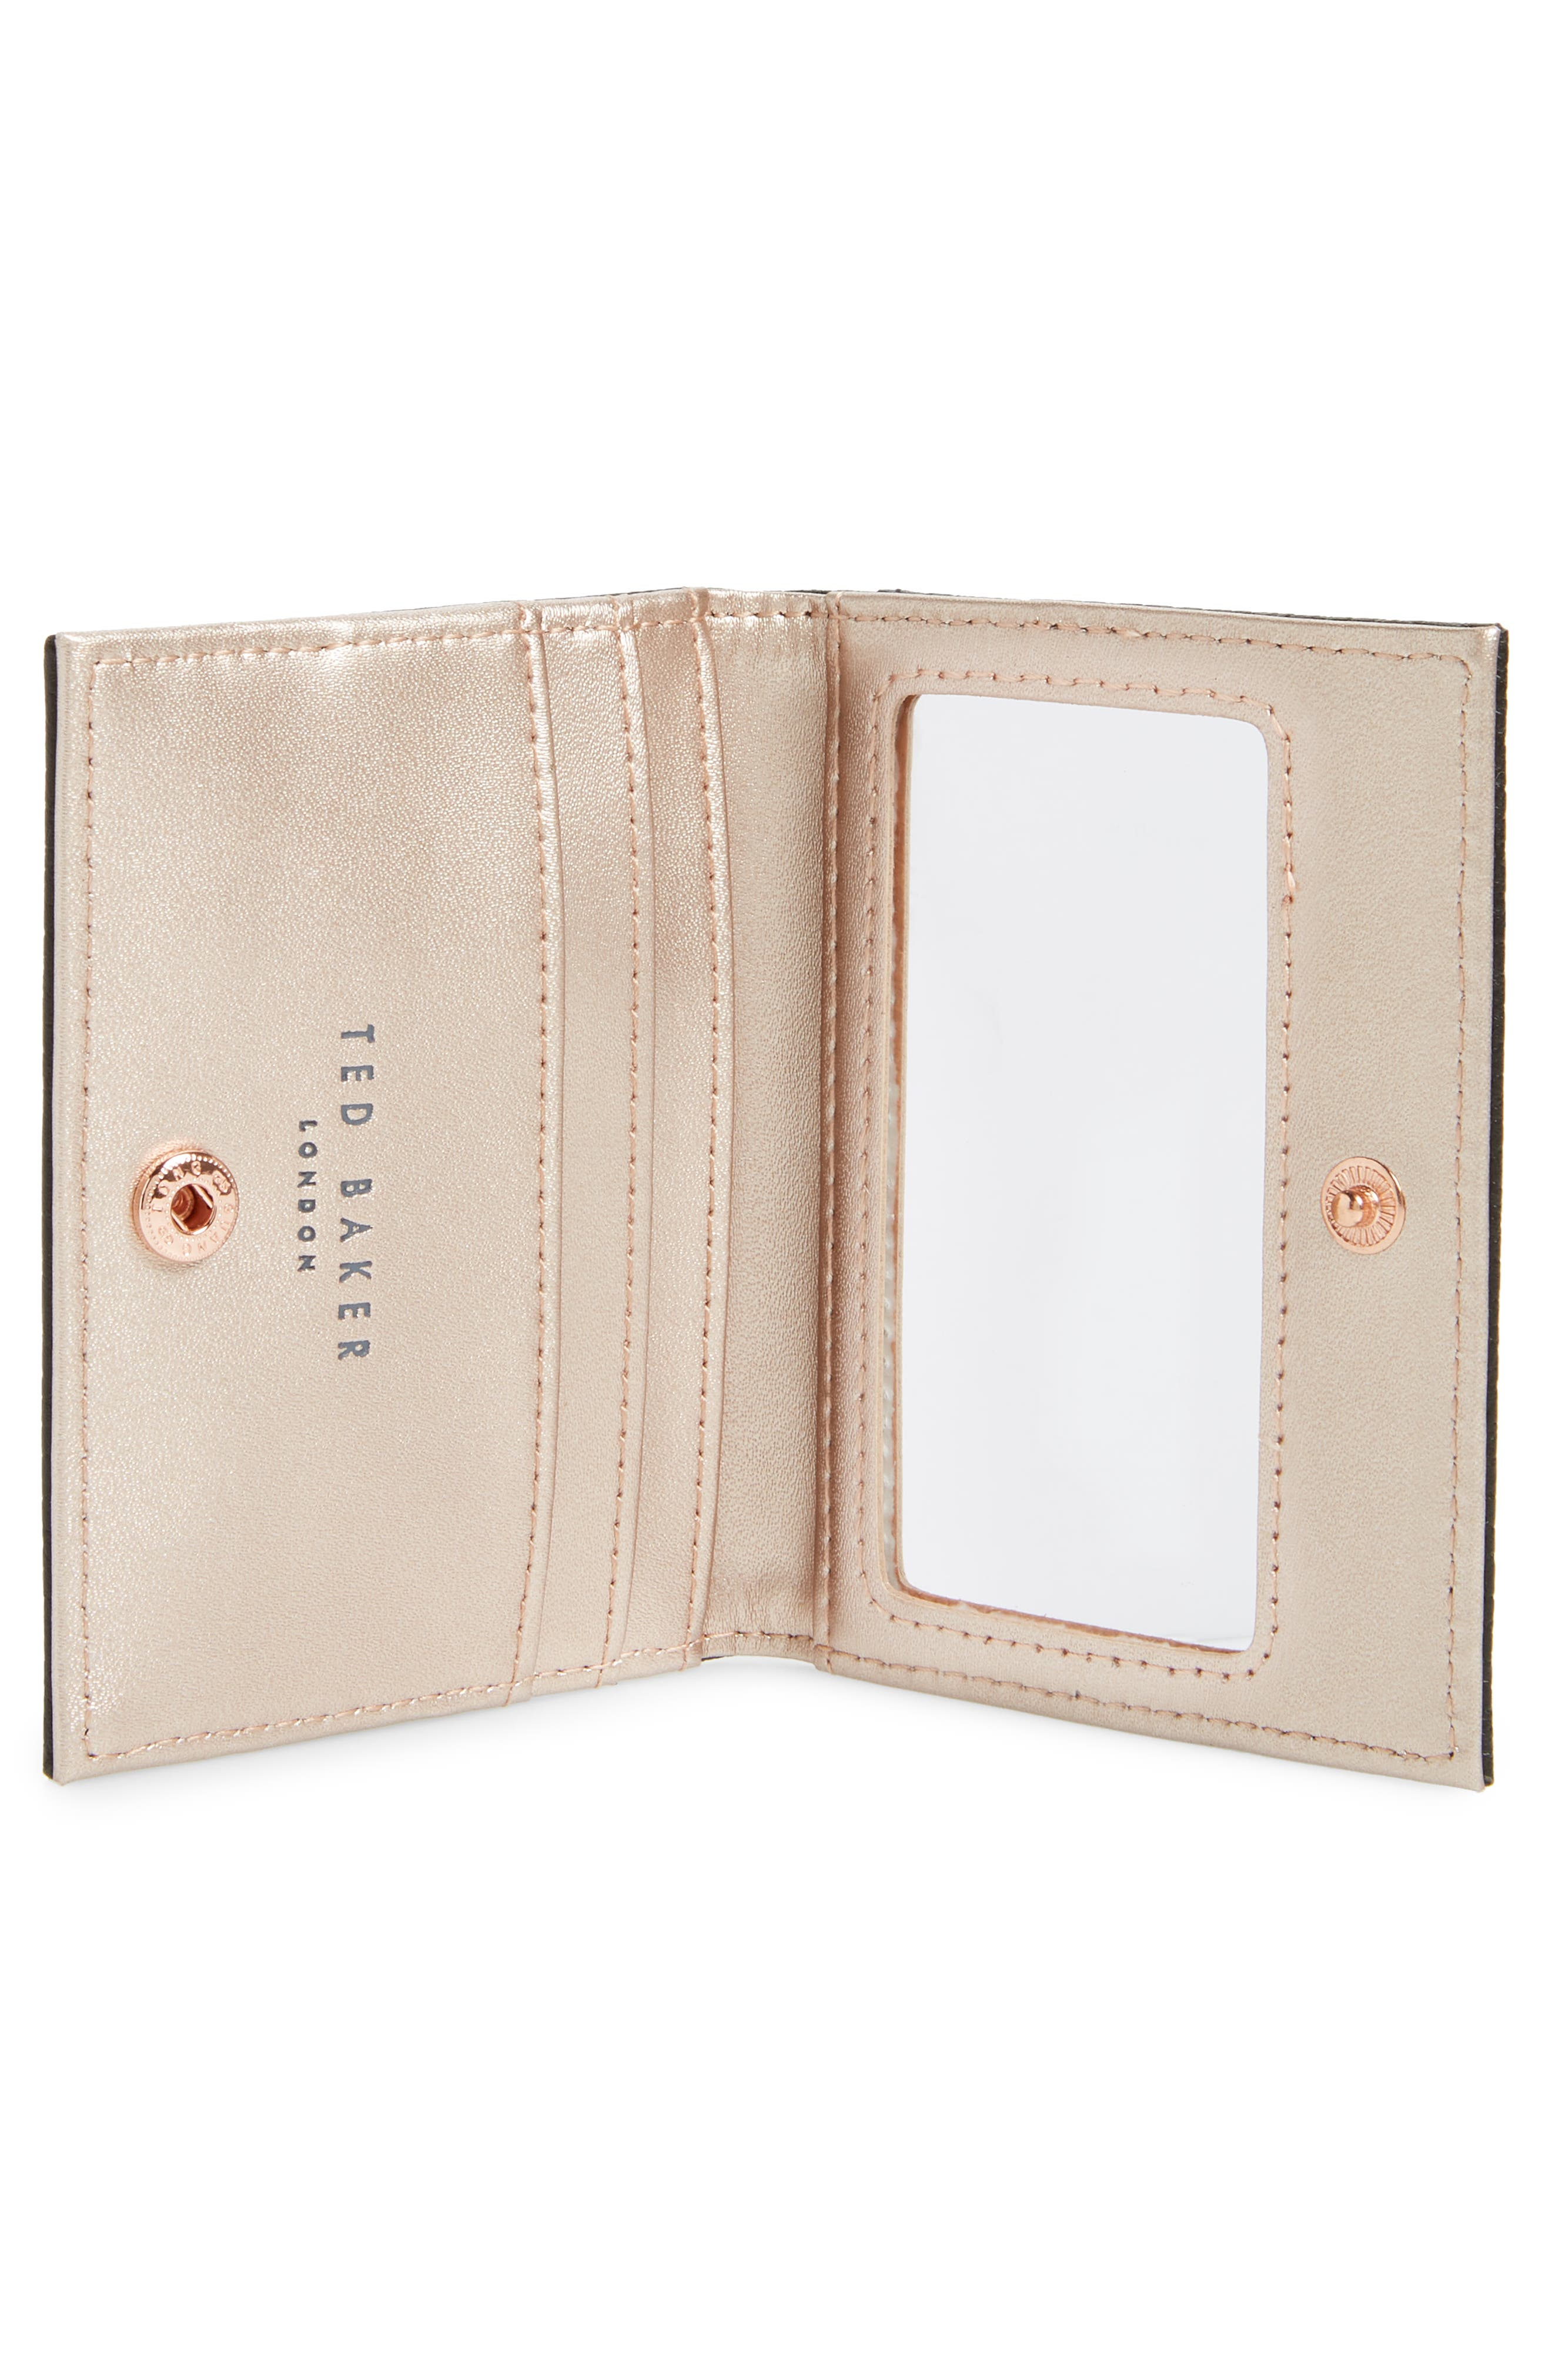 TED BAKER LONDON,                             Edyth Leather Cardholder with Mirror,                             Alternate thumbnail 2, color,                             001